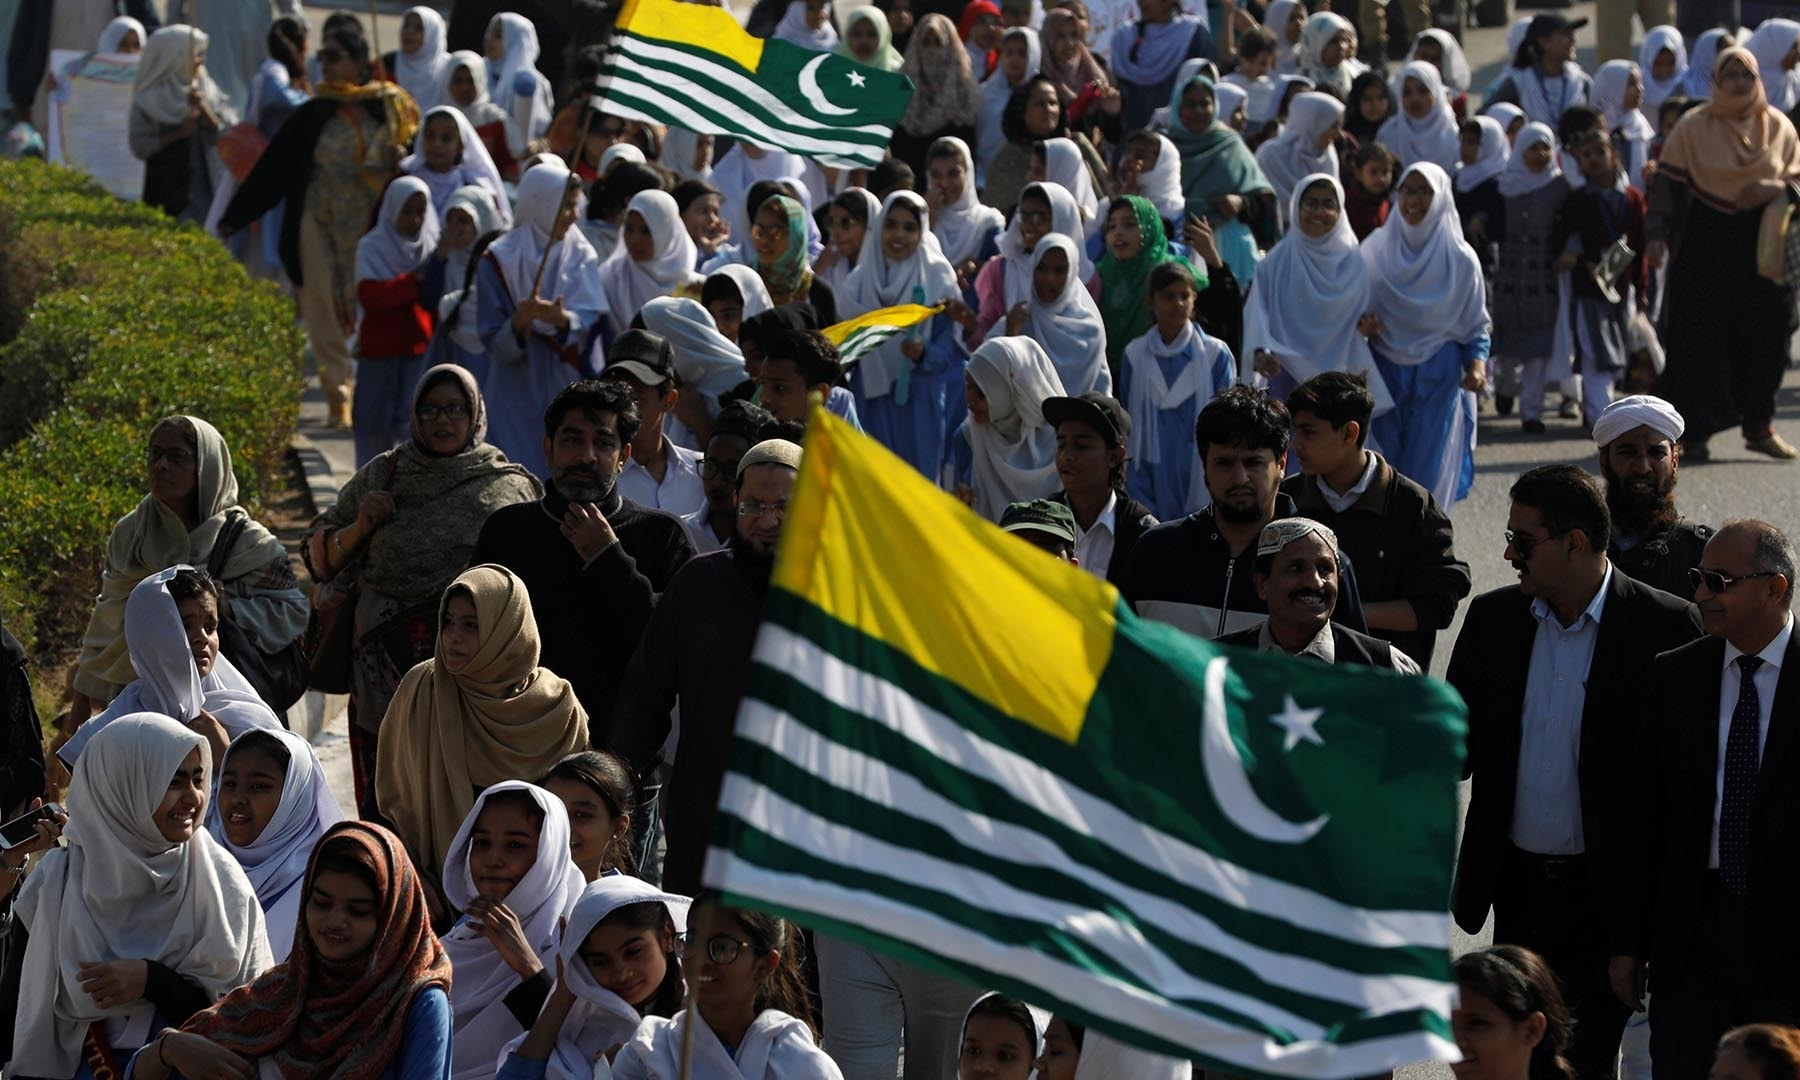 Students and teachers carry flags as they attend a march to mark Kashmir Solidarity Day at the mausoleum of the Mohammad Ali Jinnah in Karachi. — Reuters